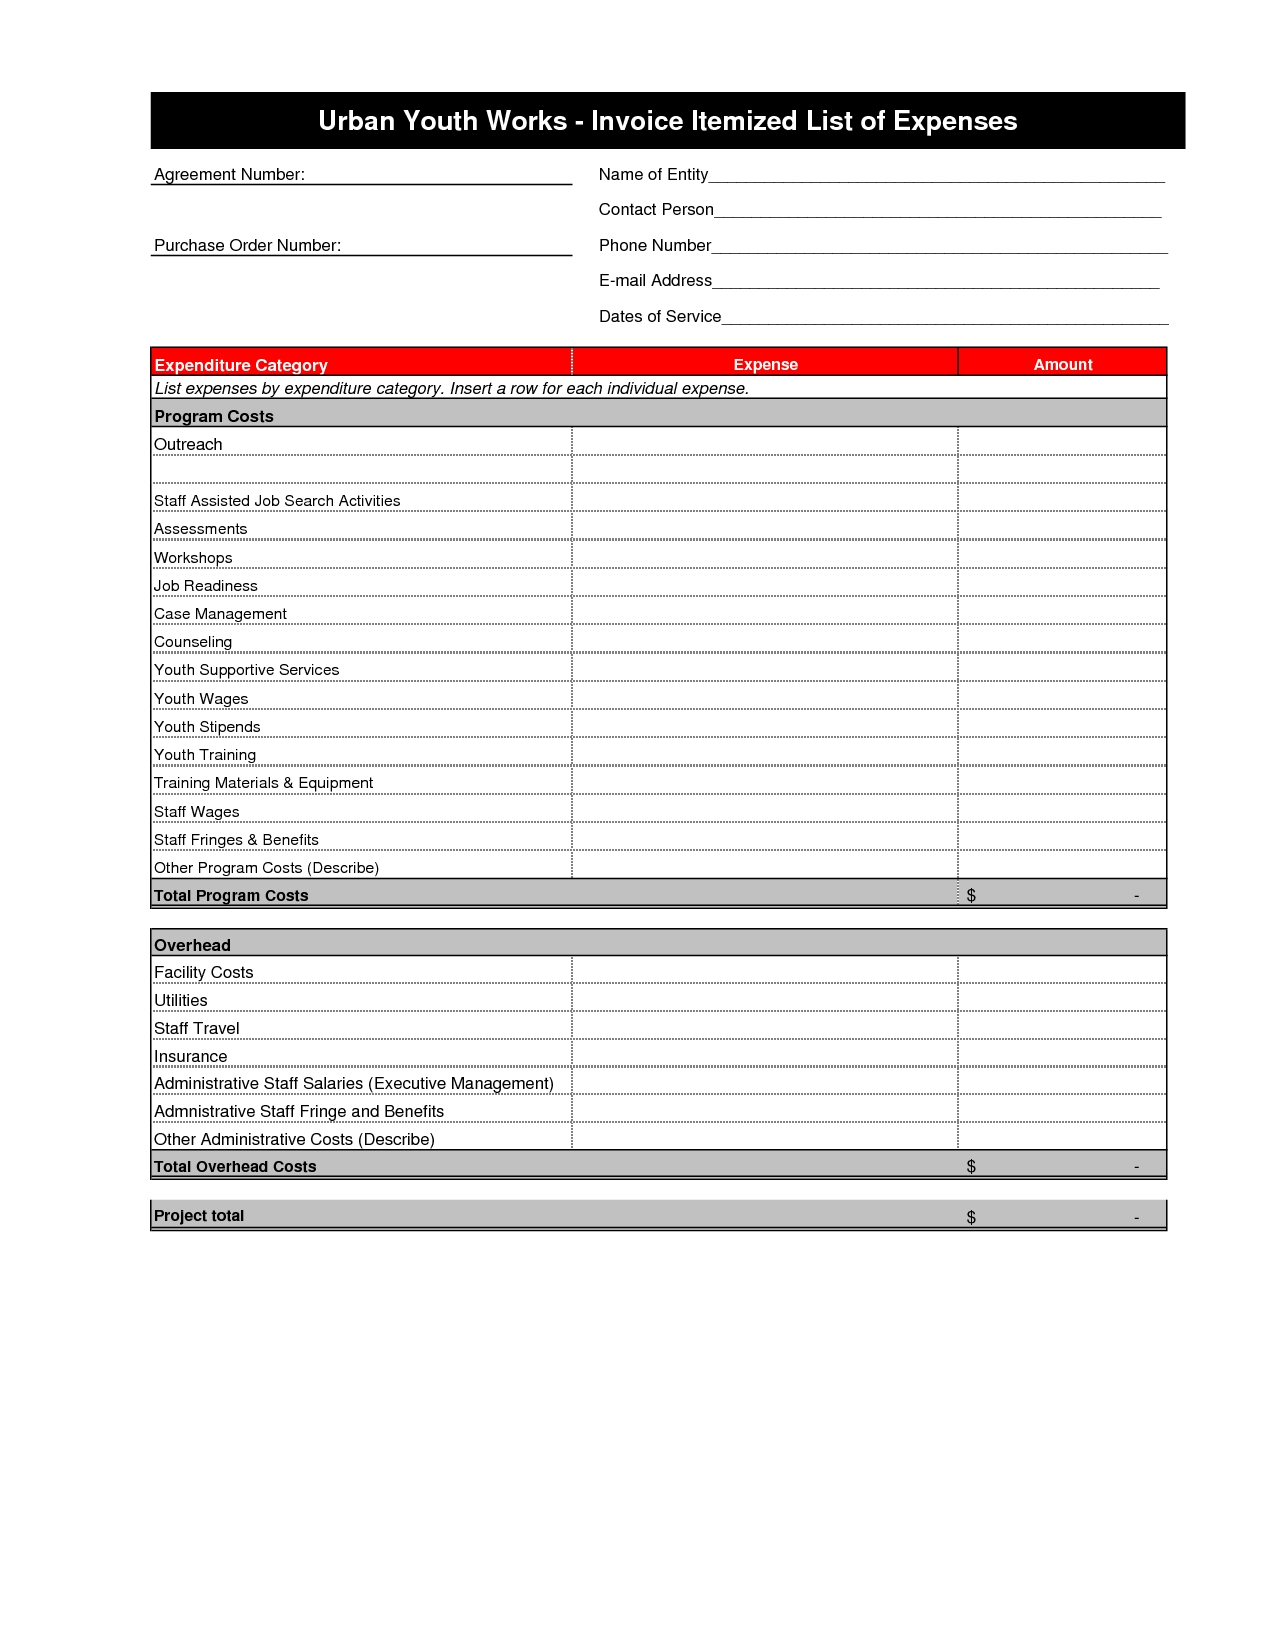 itemized invoice template 6 best images of itemized invoice template itemized invoice 1275 X 1650